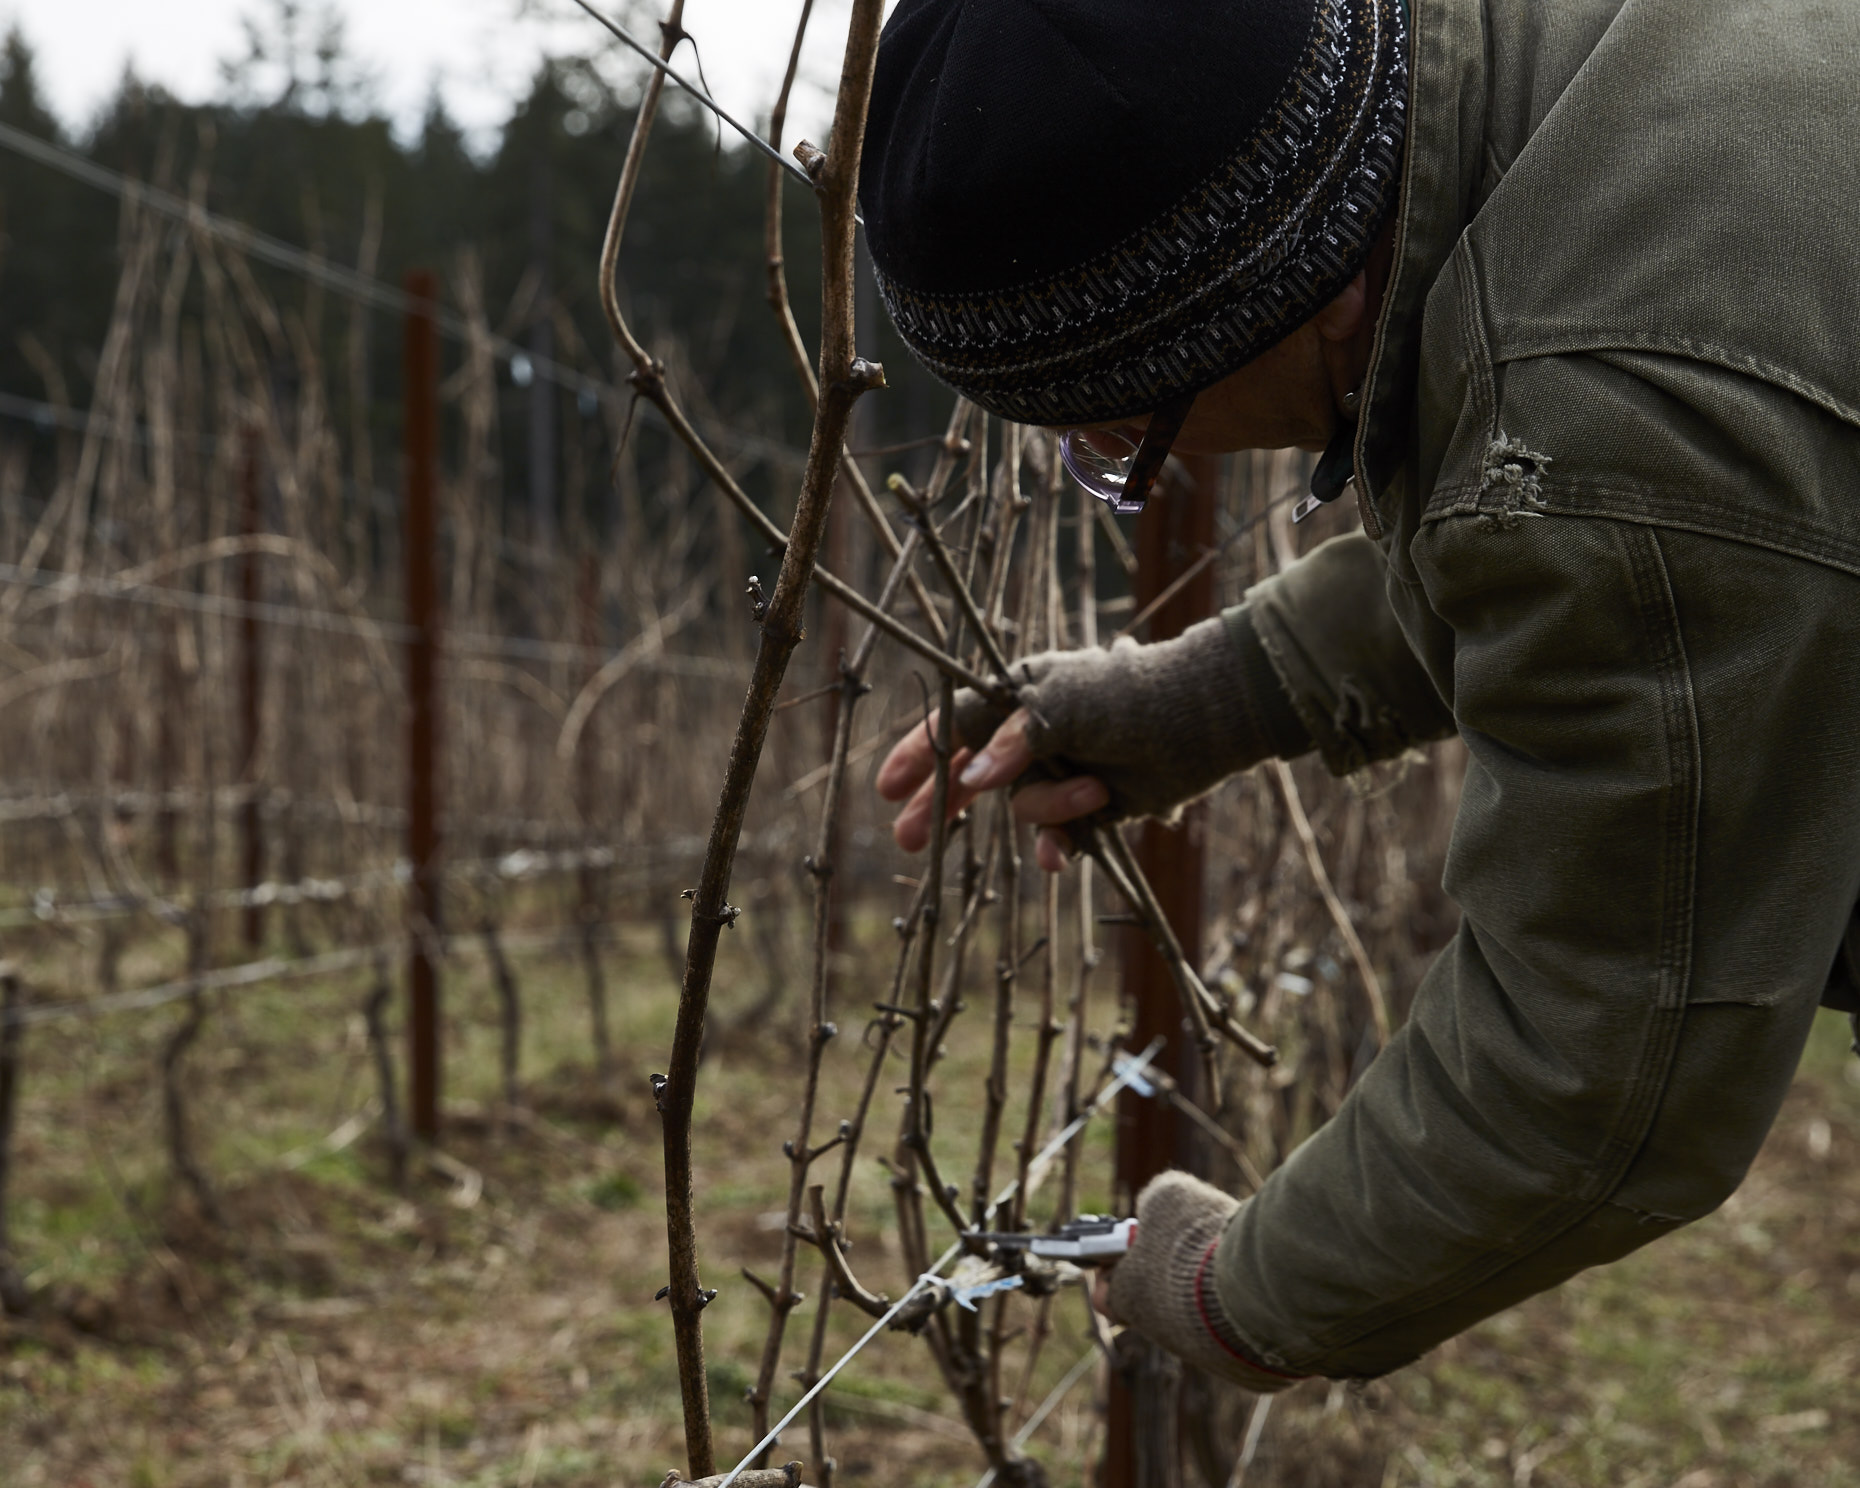 170104_JF_BF_PRUNING_023